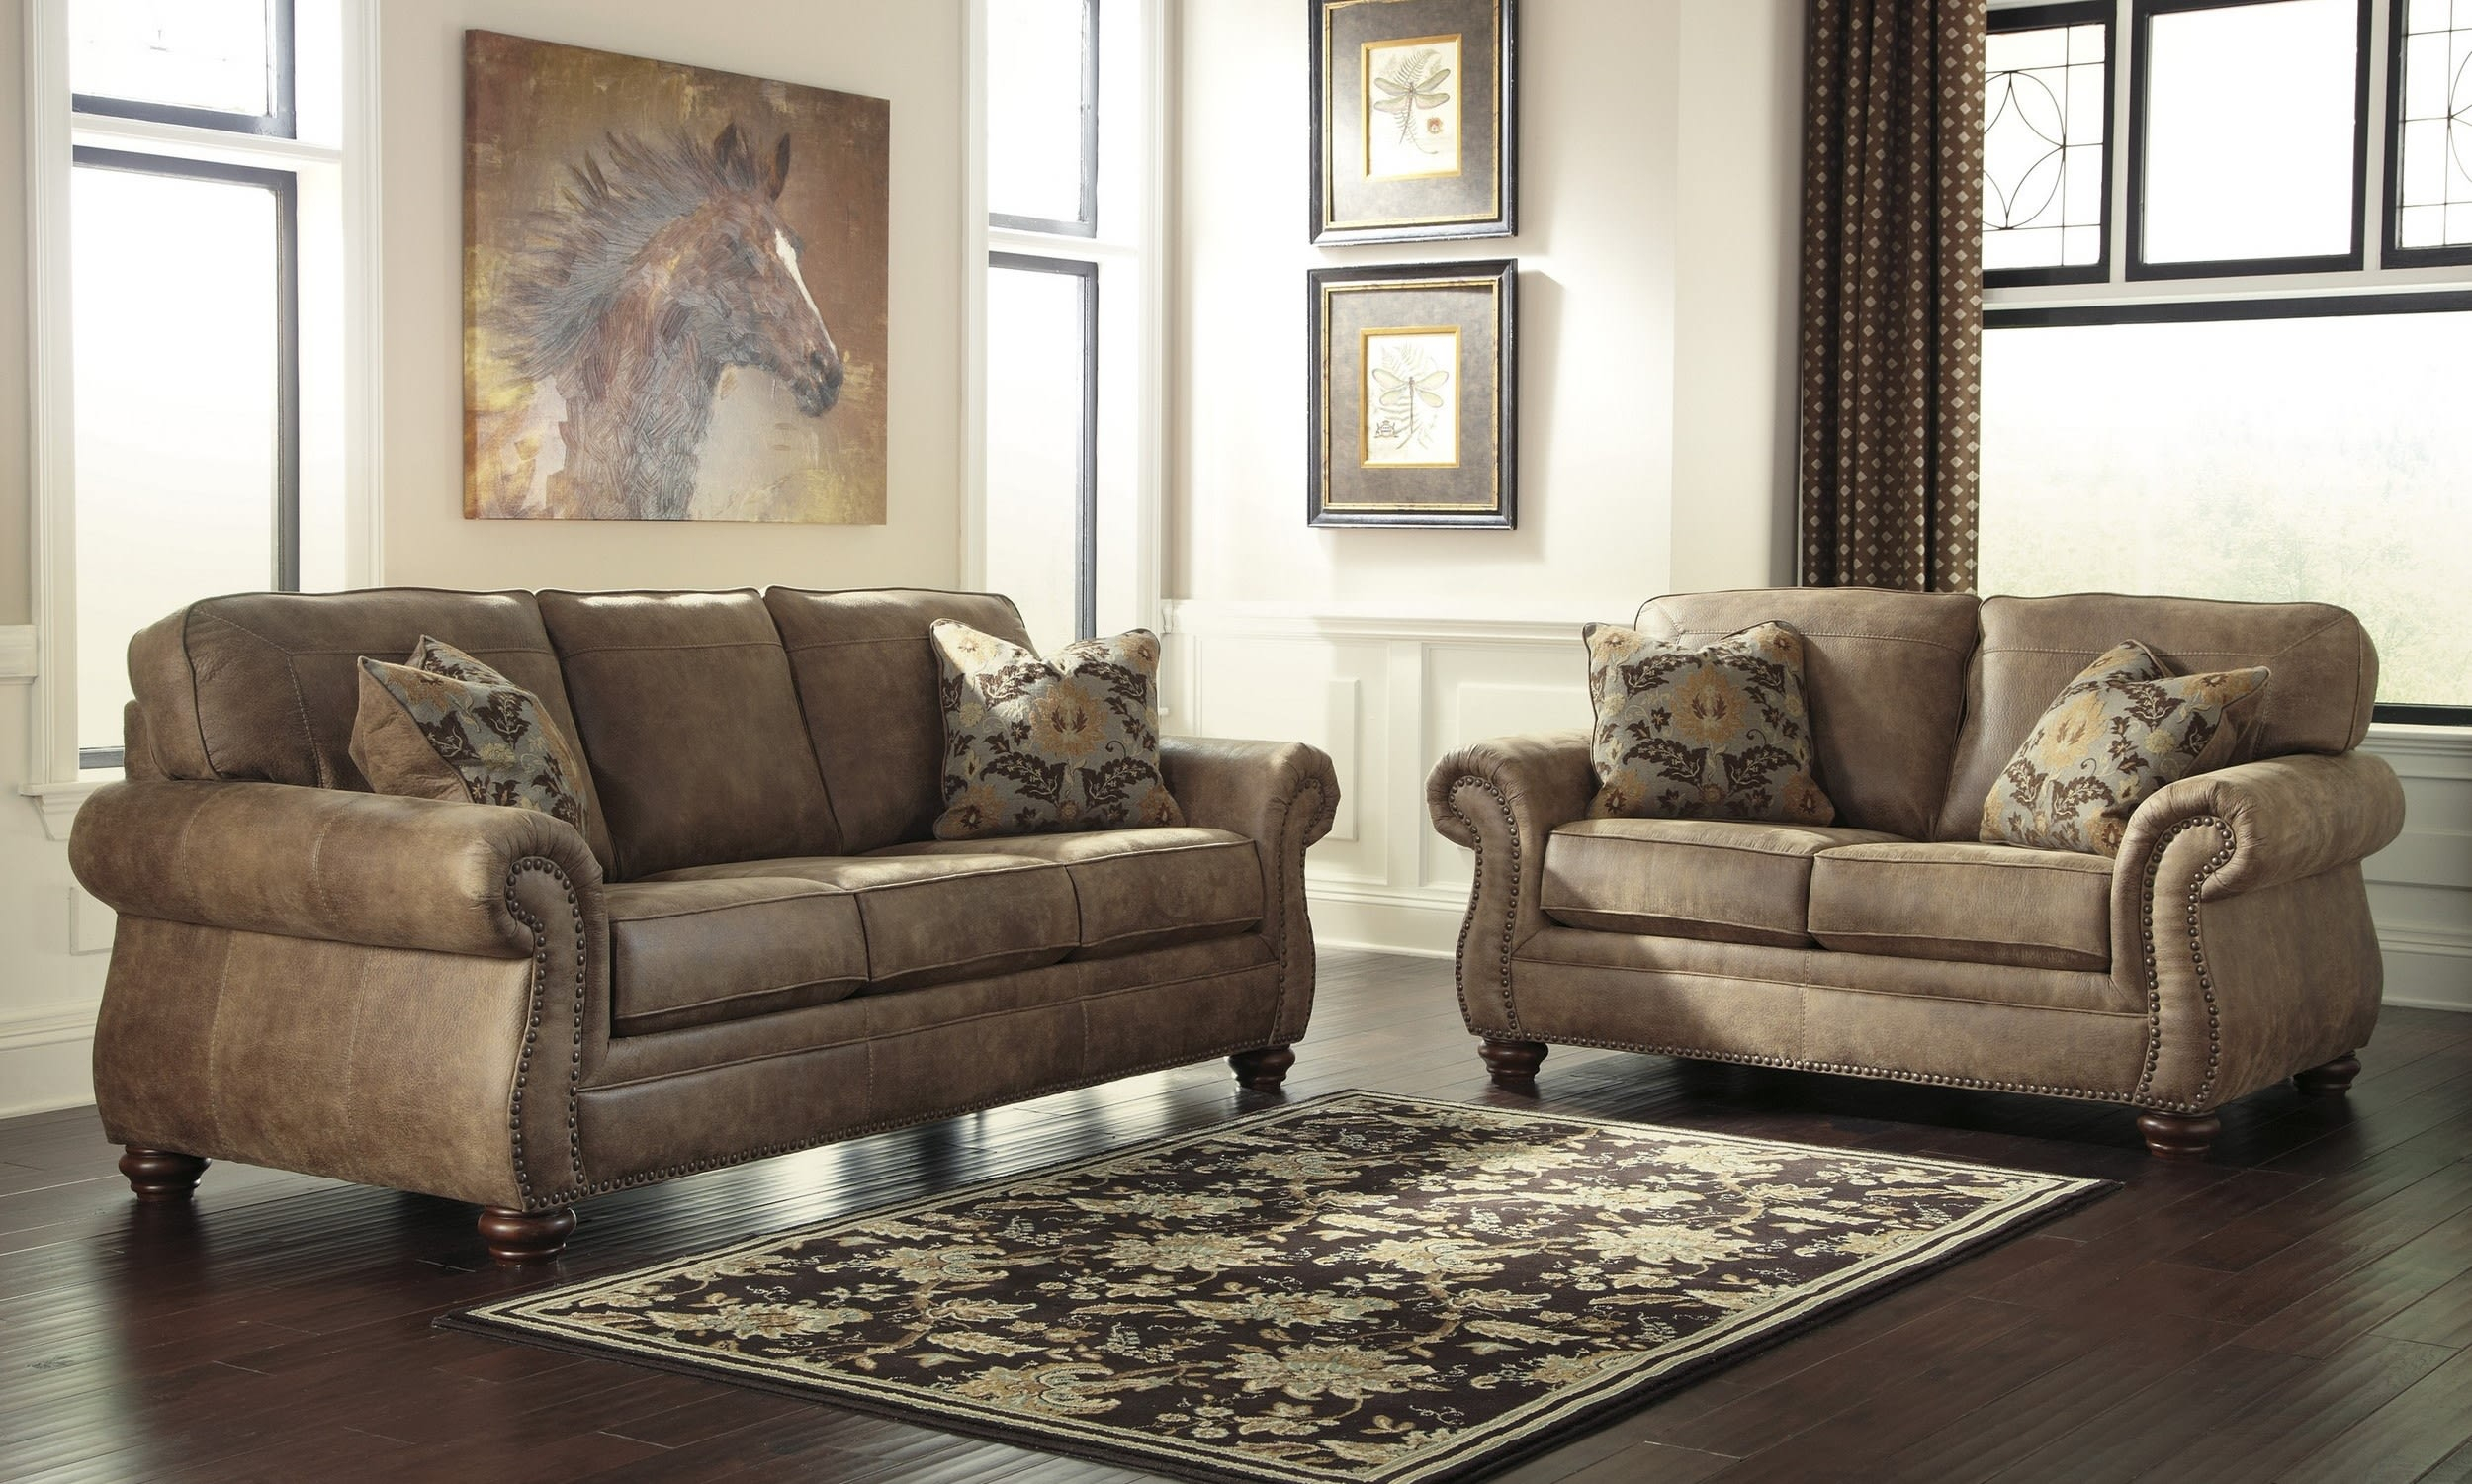 Signature Design Ashley 3190138 3190135 throughout 14 Smart Ways How to Makeover Ashley Living Room Set